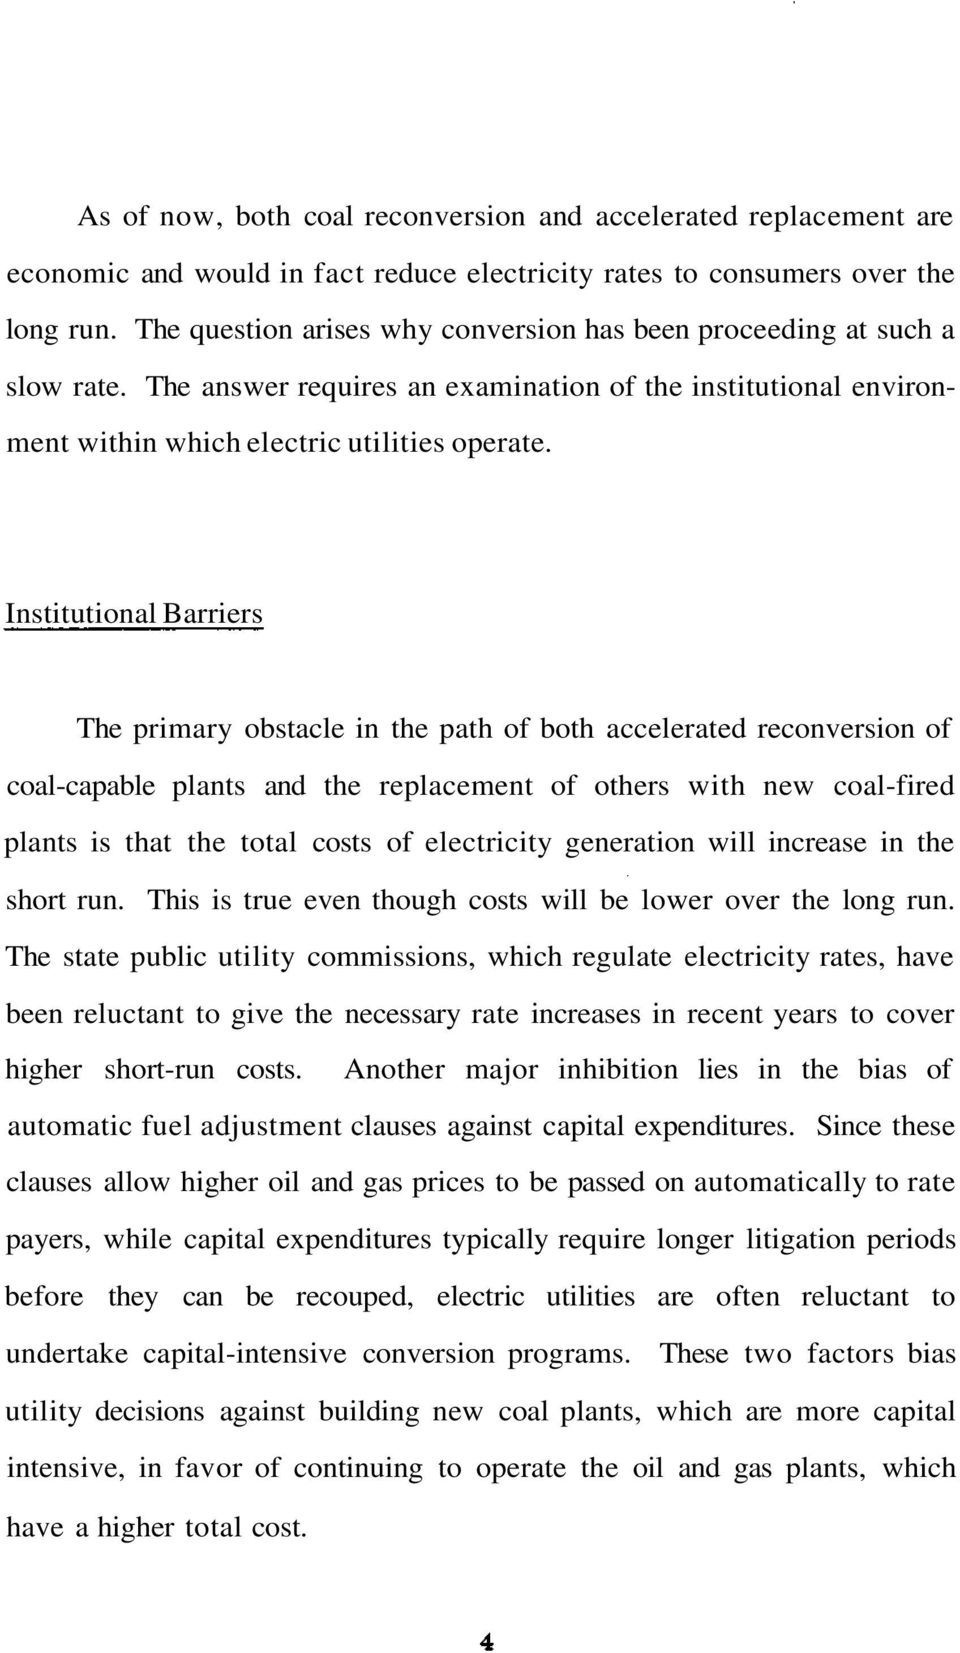 Institutional Barriers The primary obstacle in the path of both accelerated reconversion of coal-capable plants and the replacement of others with new coal-fired plants is that the total costs of